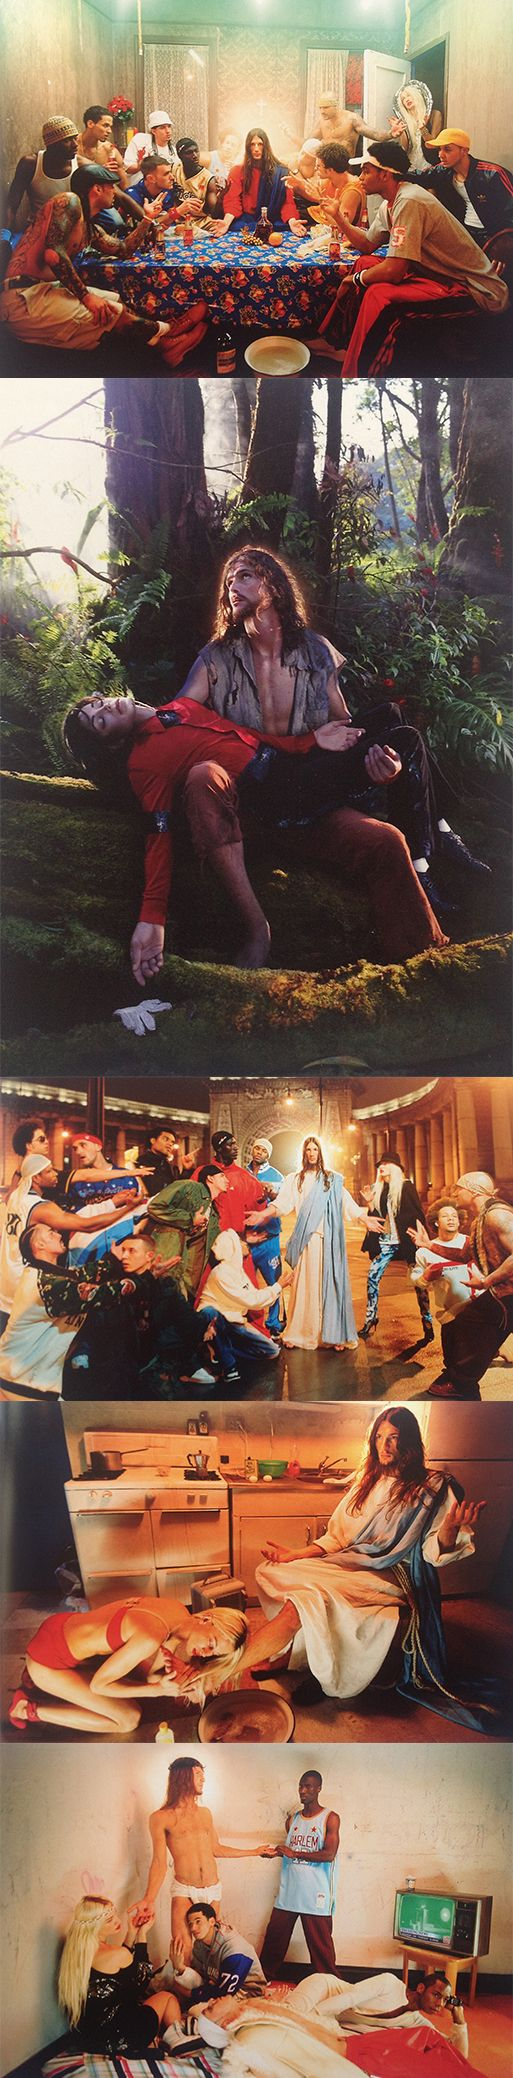 David La Chapelle - a set contemporary tableau vivants